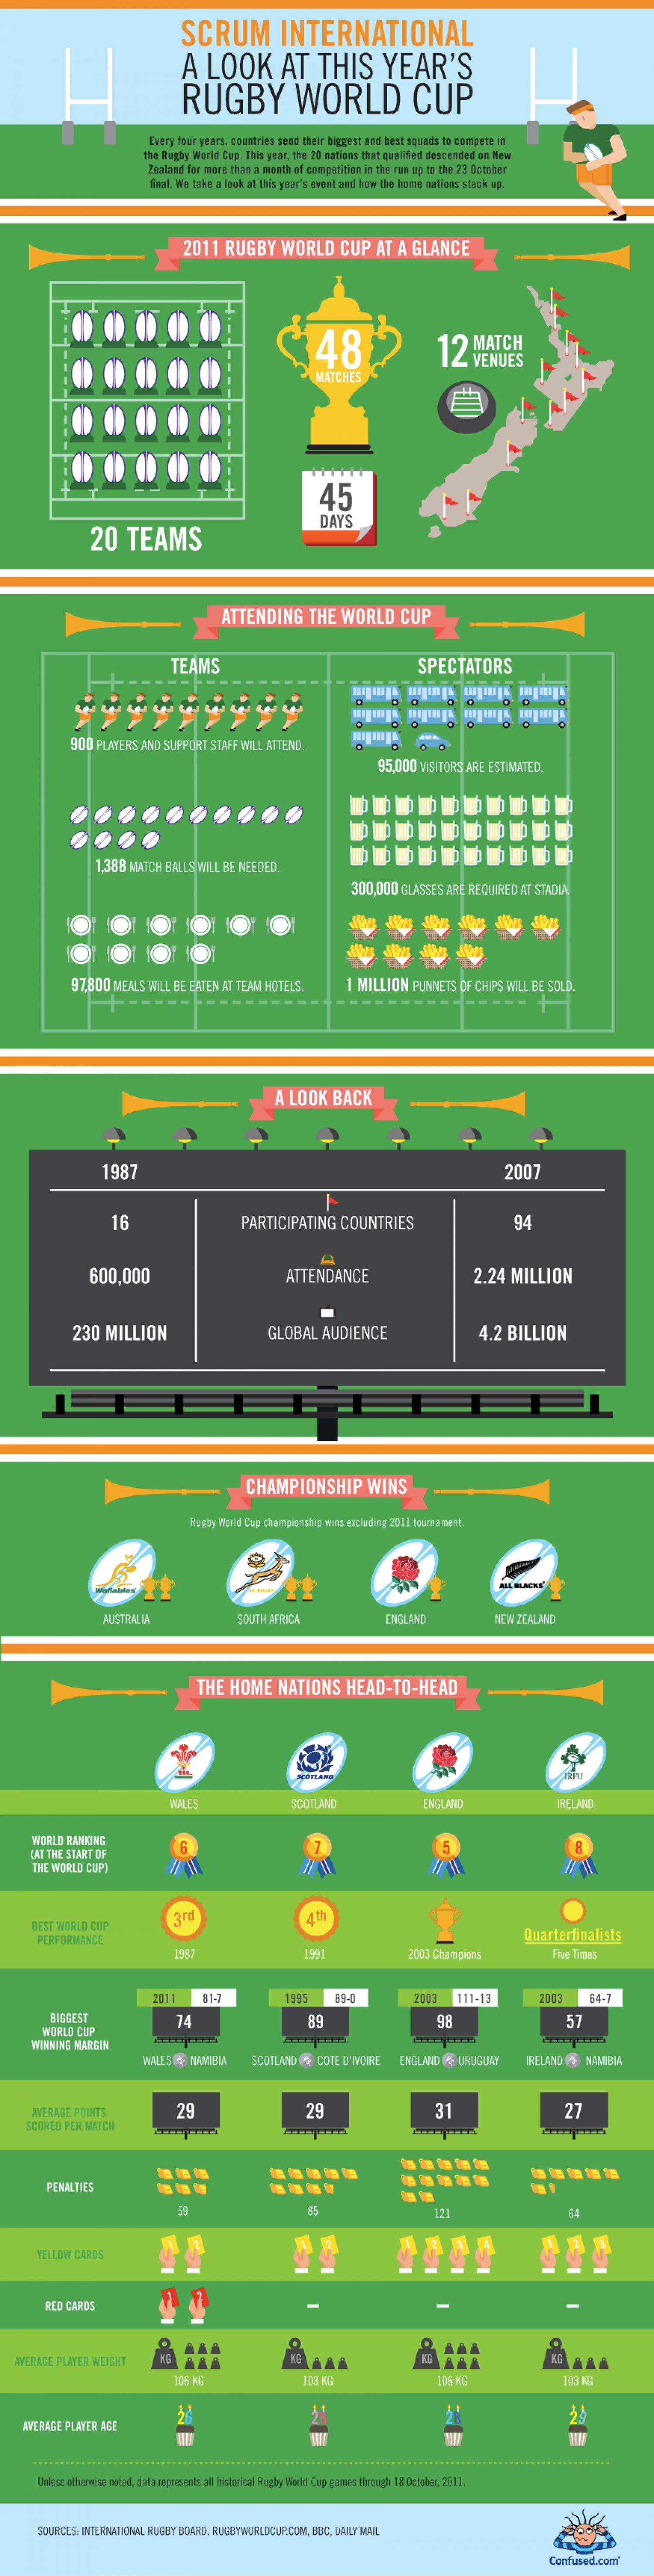 Scrum international Infographic